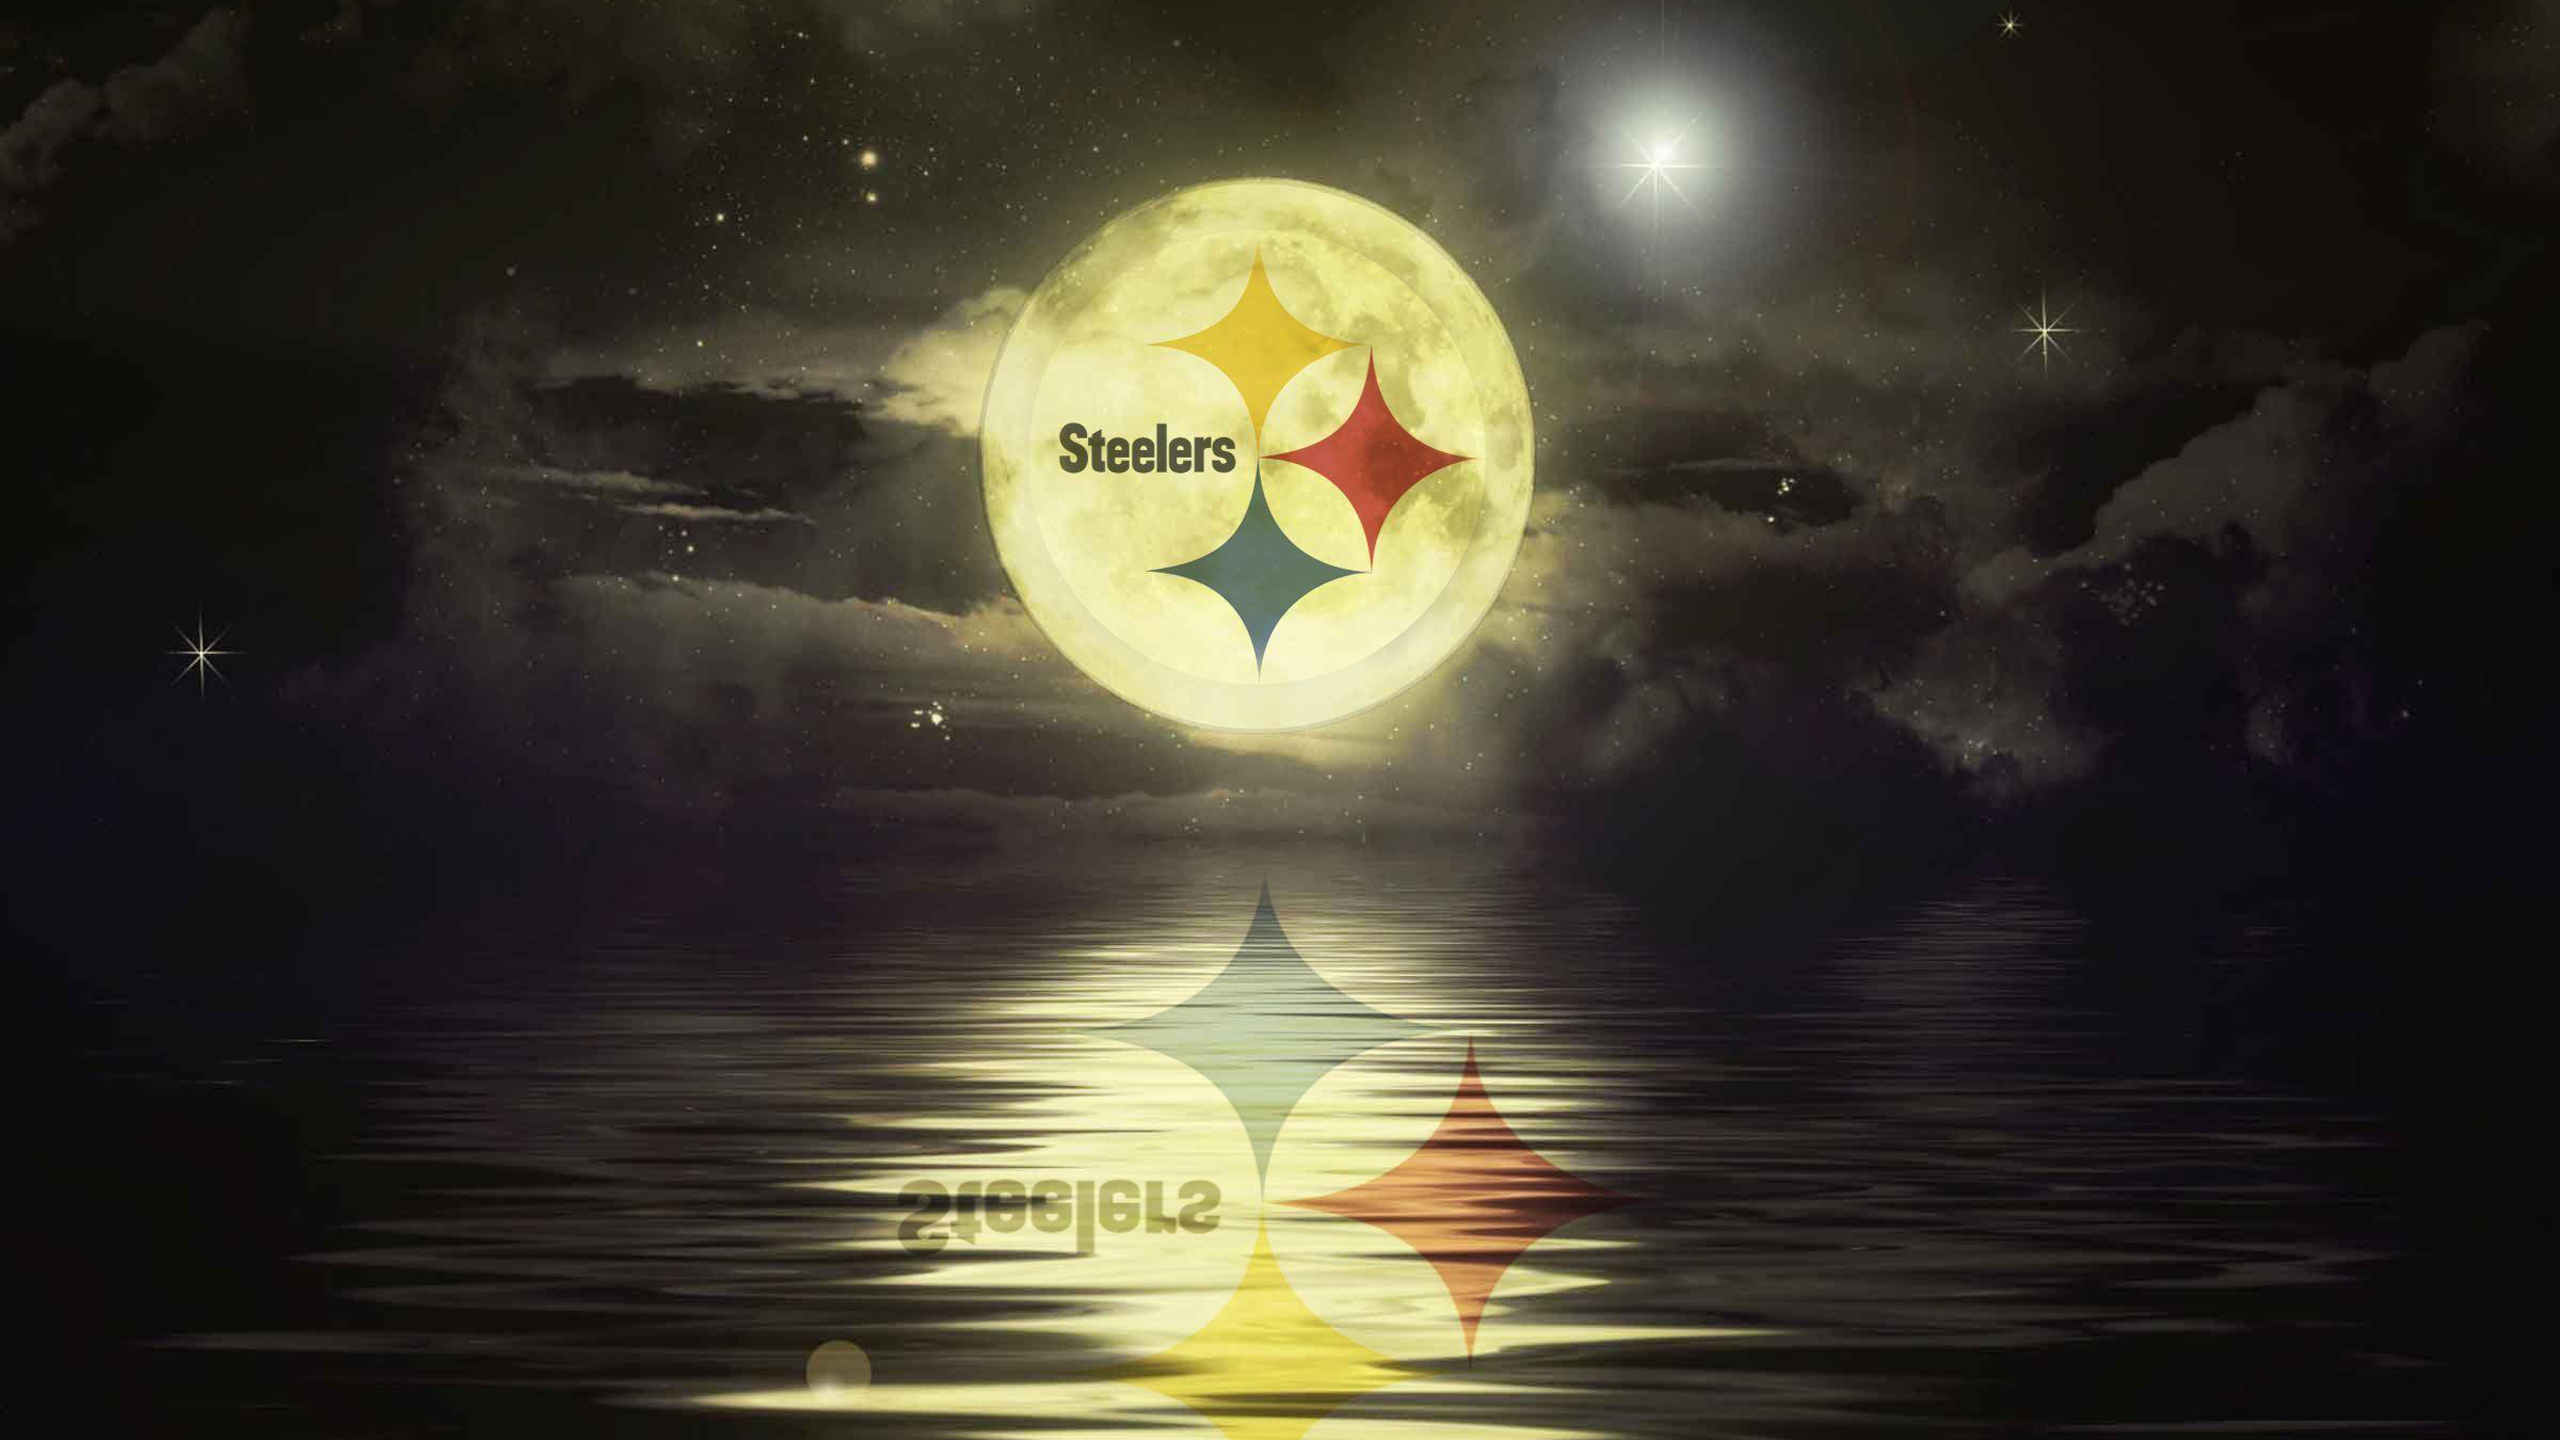 Download Pittsburgh Steelers With Background Of Cloudy Sky With Stars At Night Hd Steelers